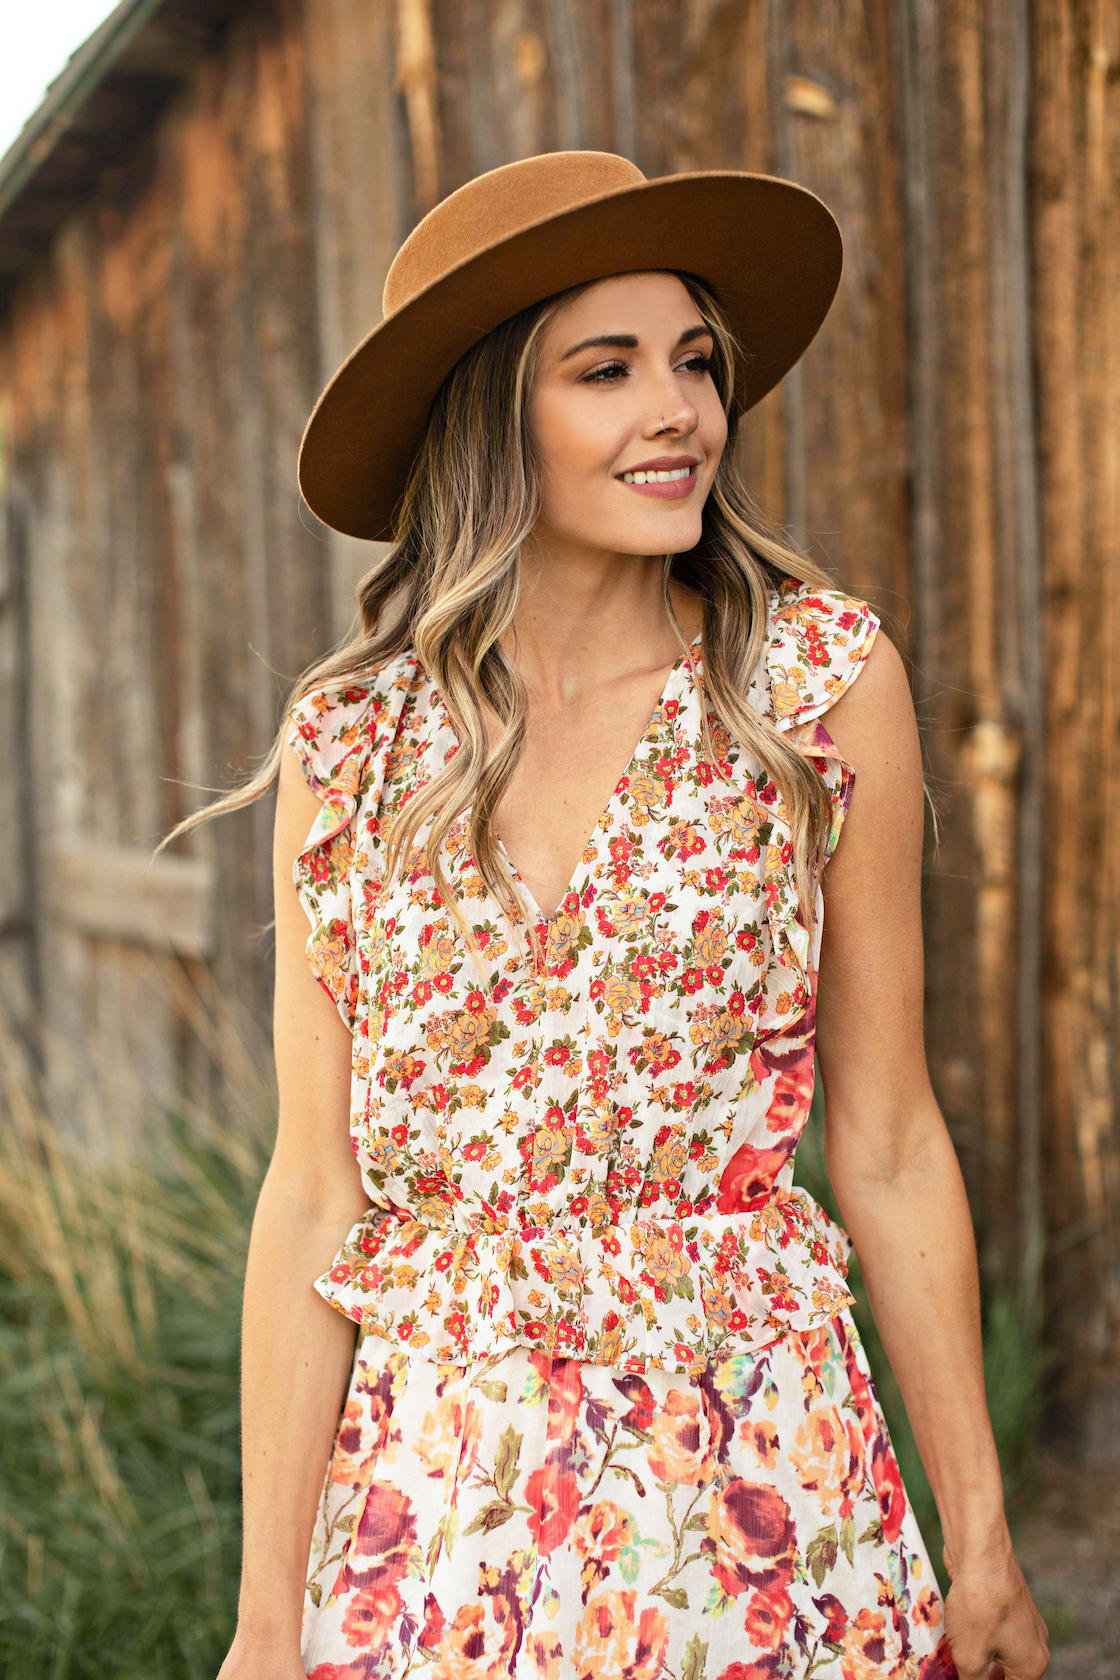 Mixed Floral With Crisscross Back - Ivory/Orange - Detail